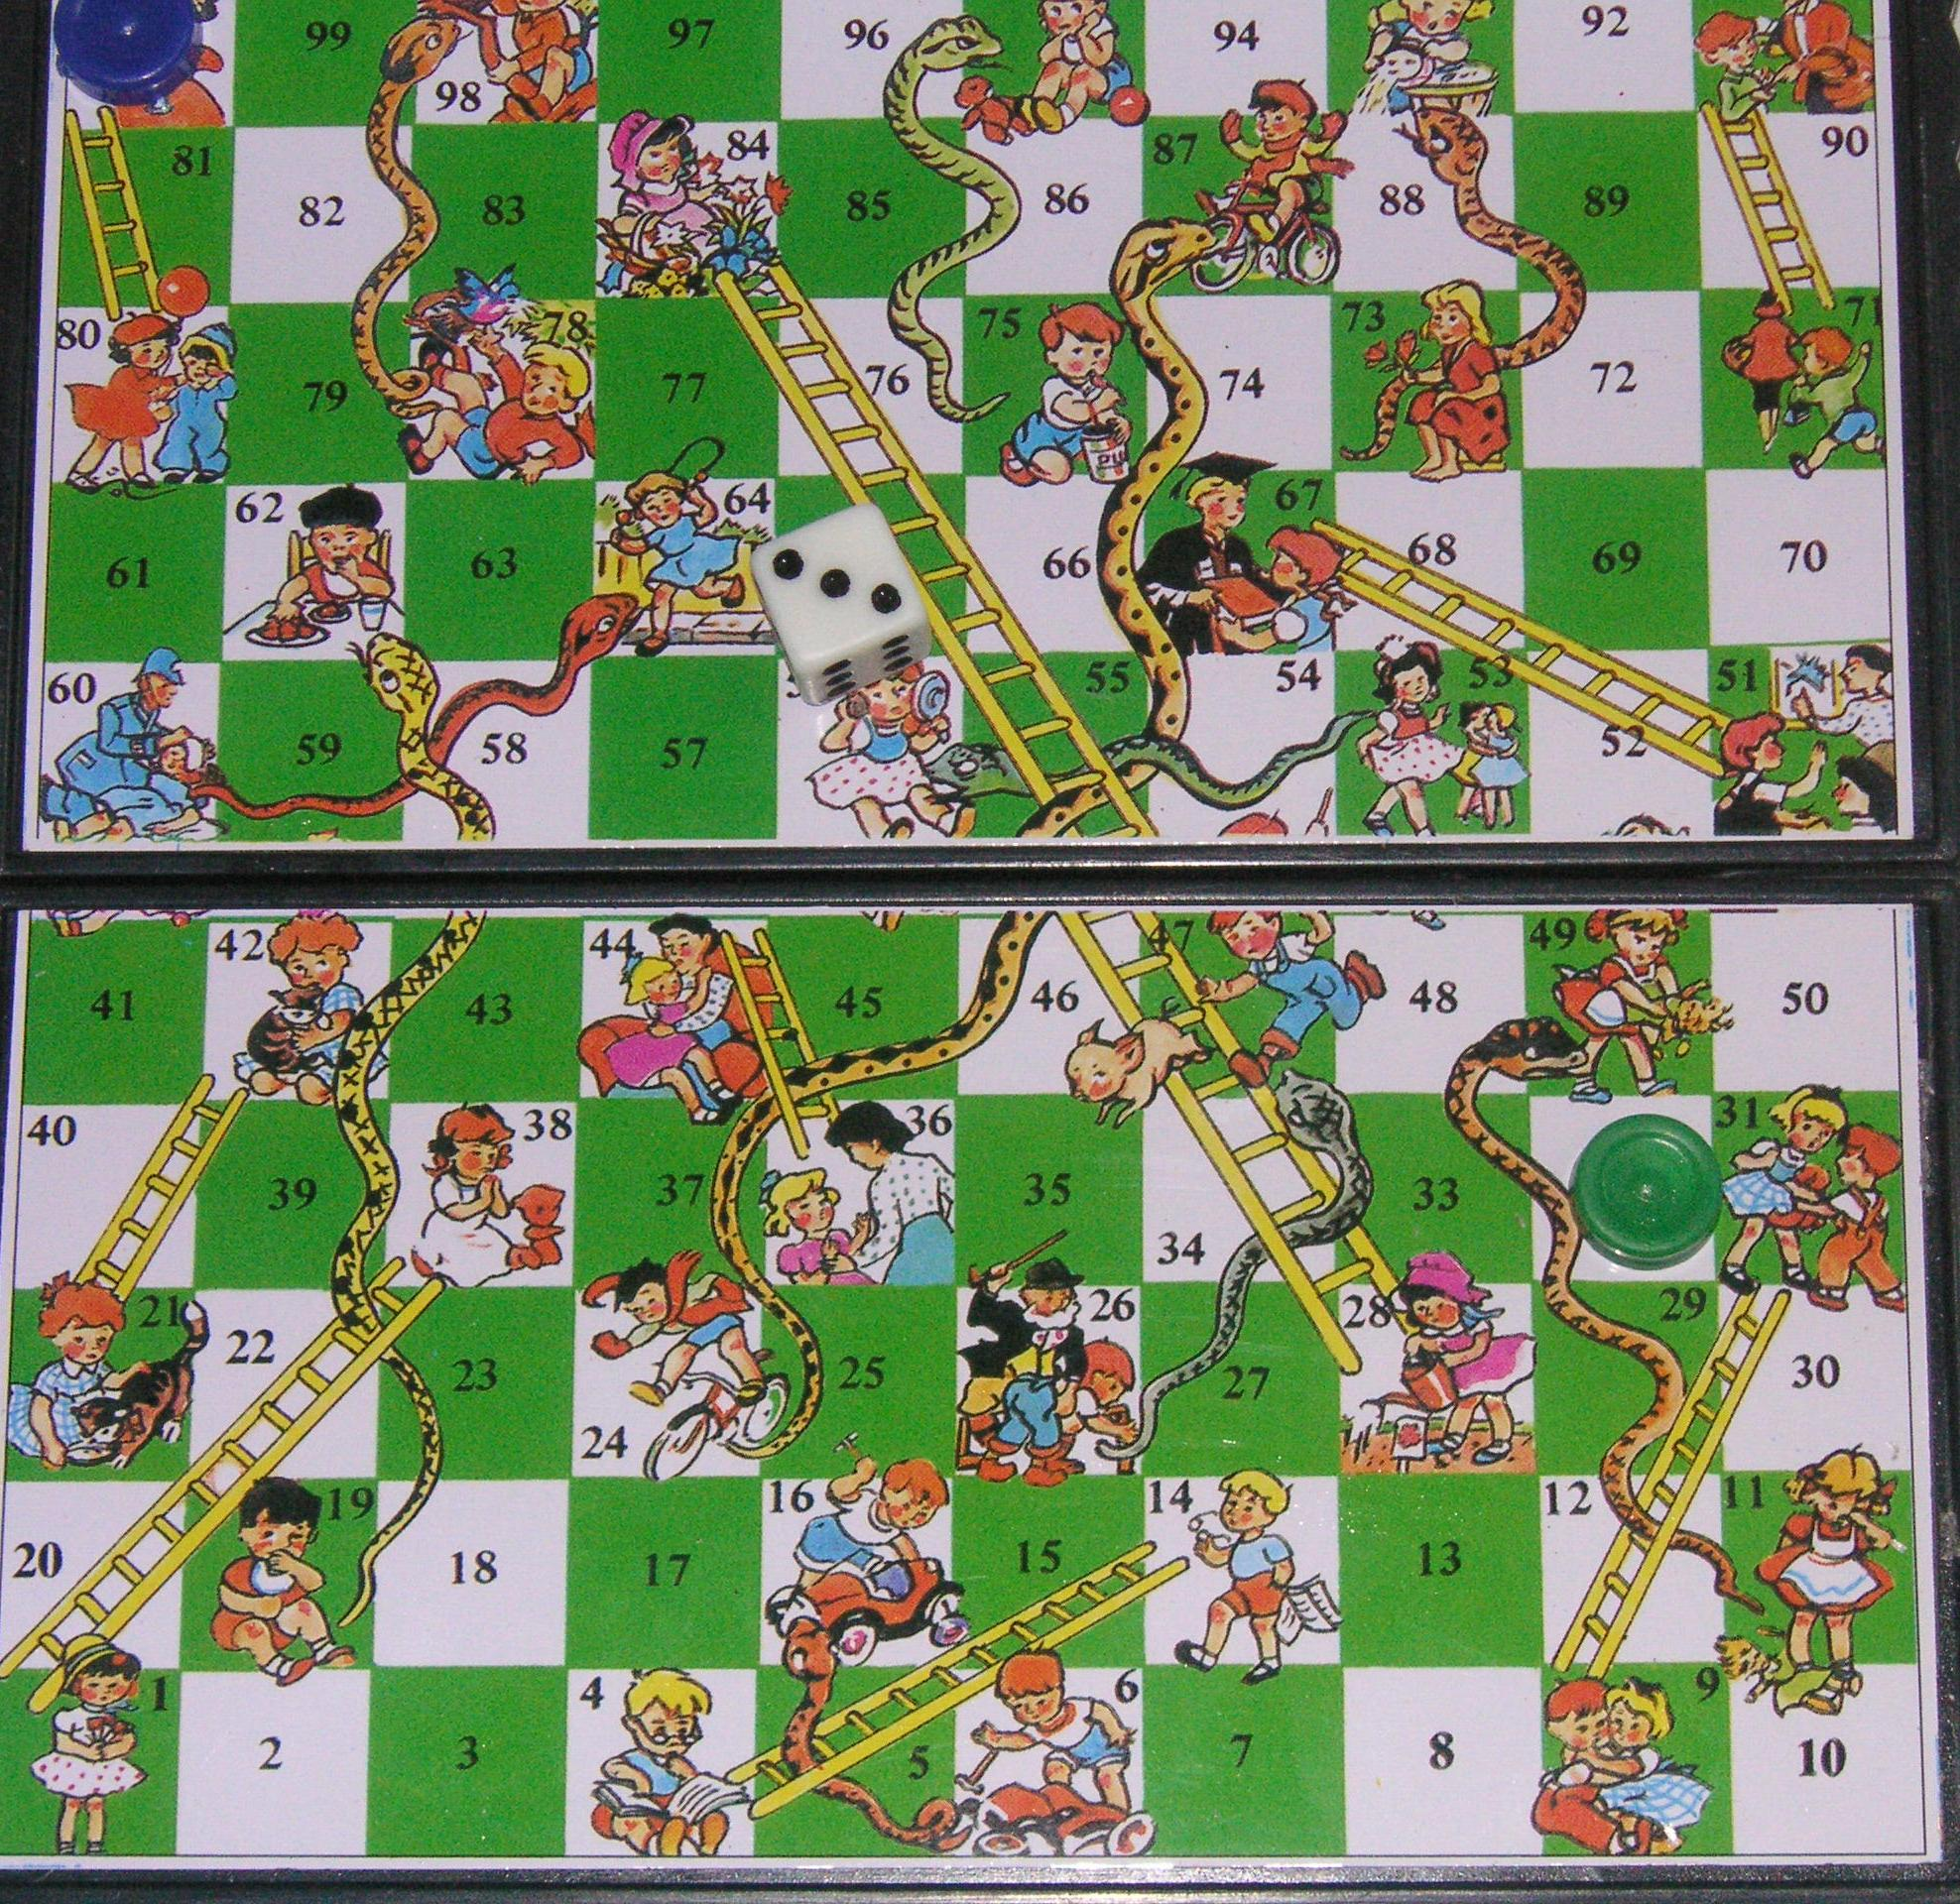 ... - Related Pictures Snakes And Ladders Game Let S Play 3d Snakes Race